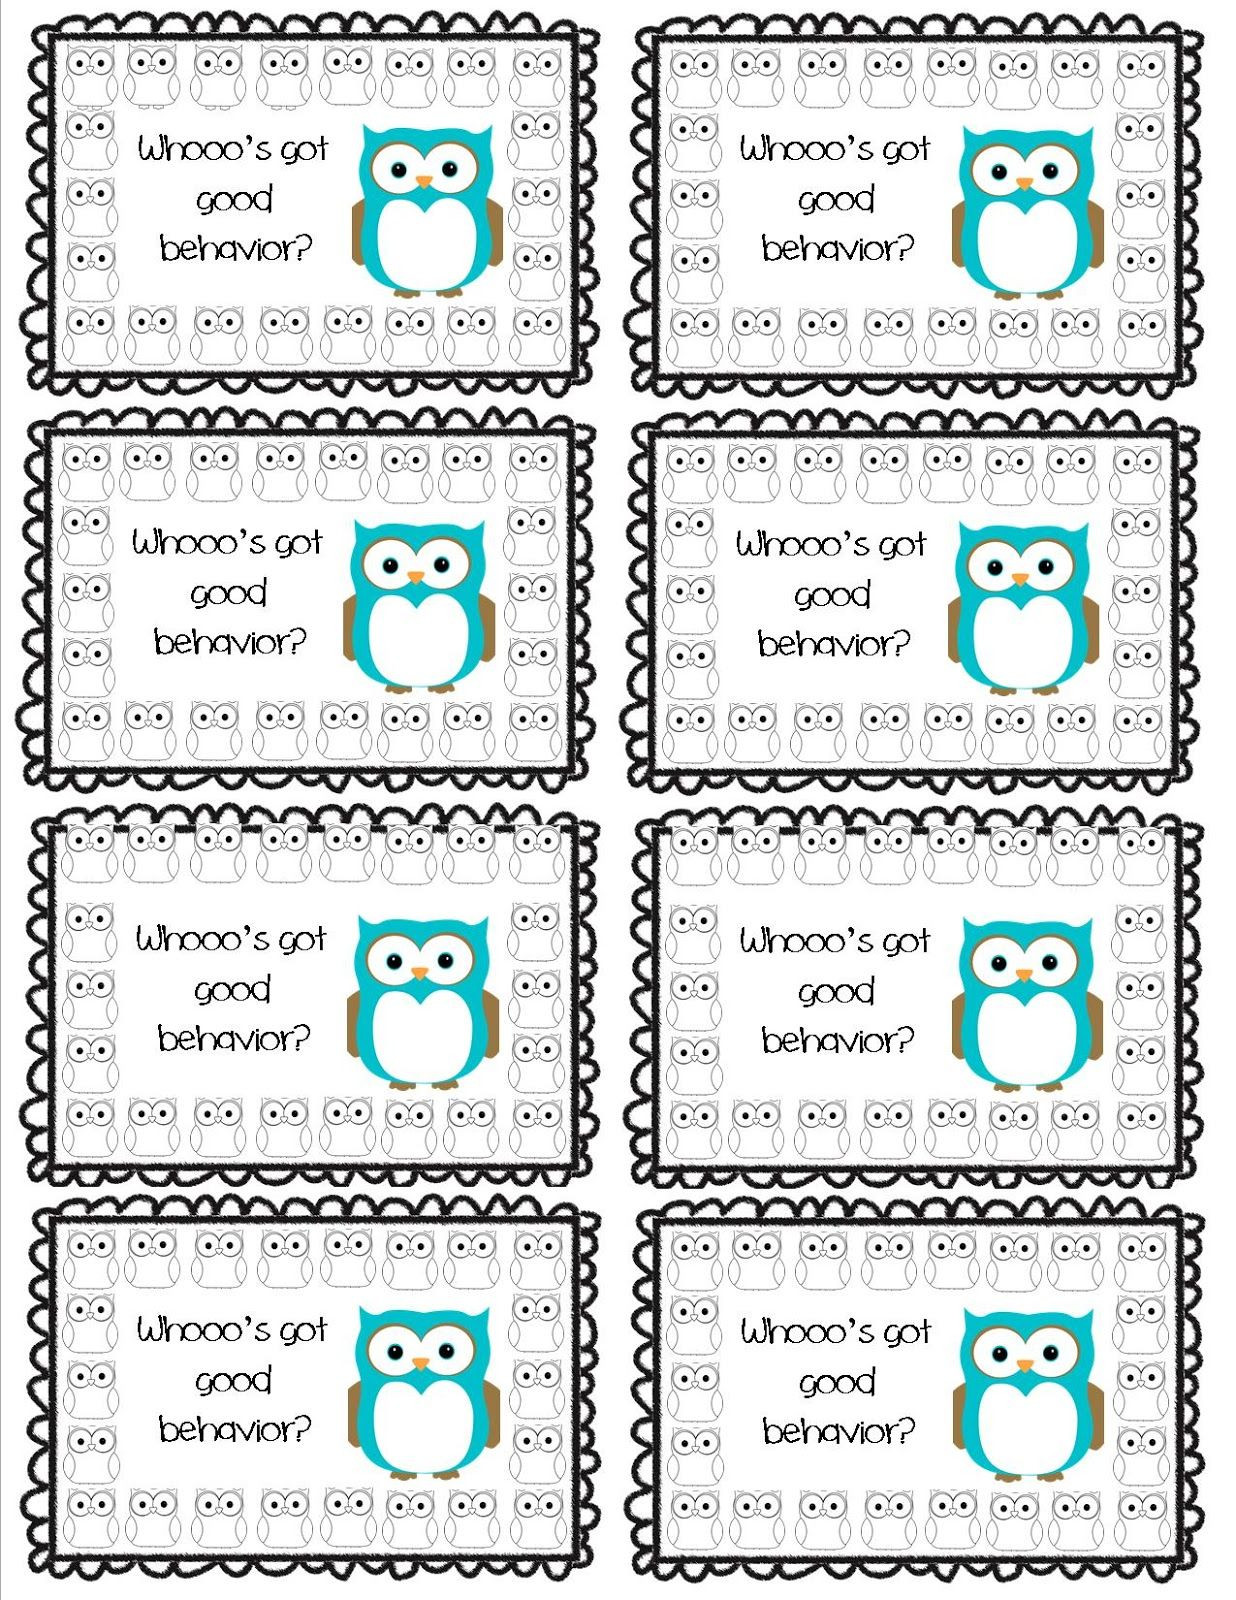 Behavior Punch Card Template